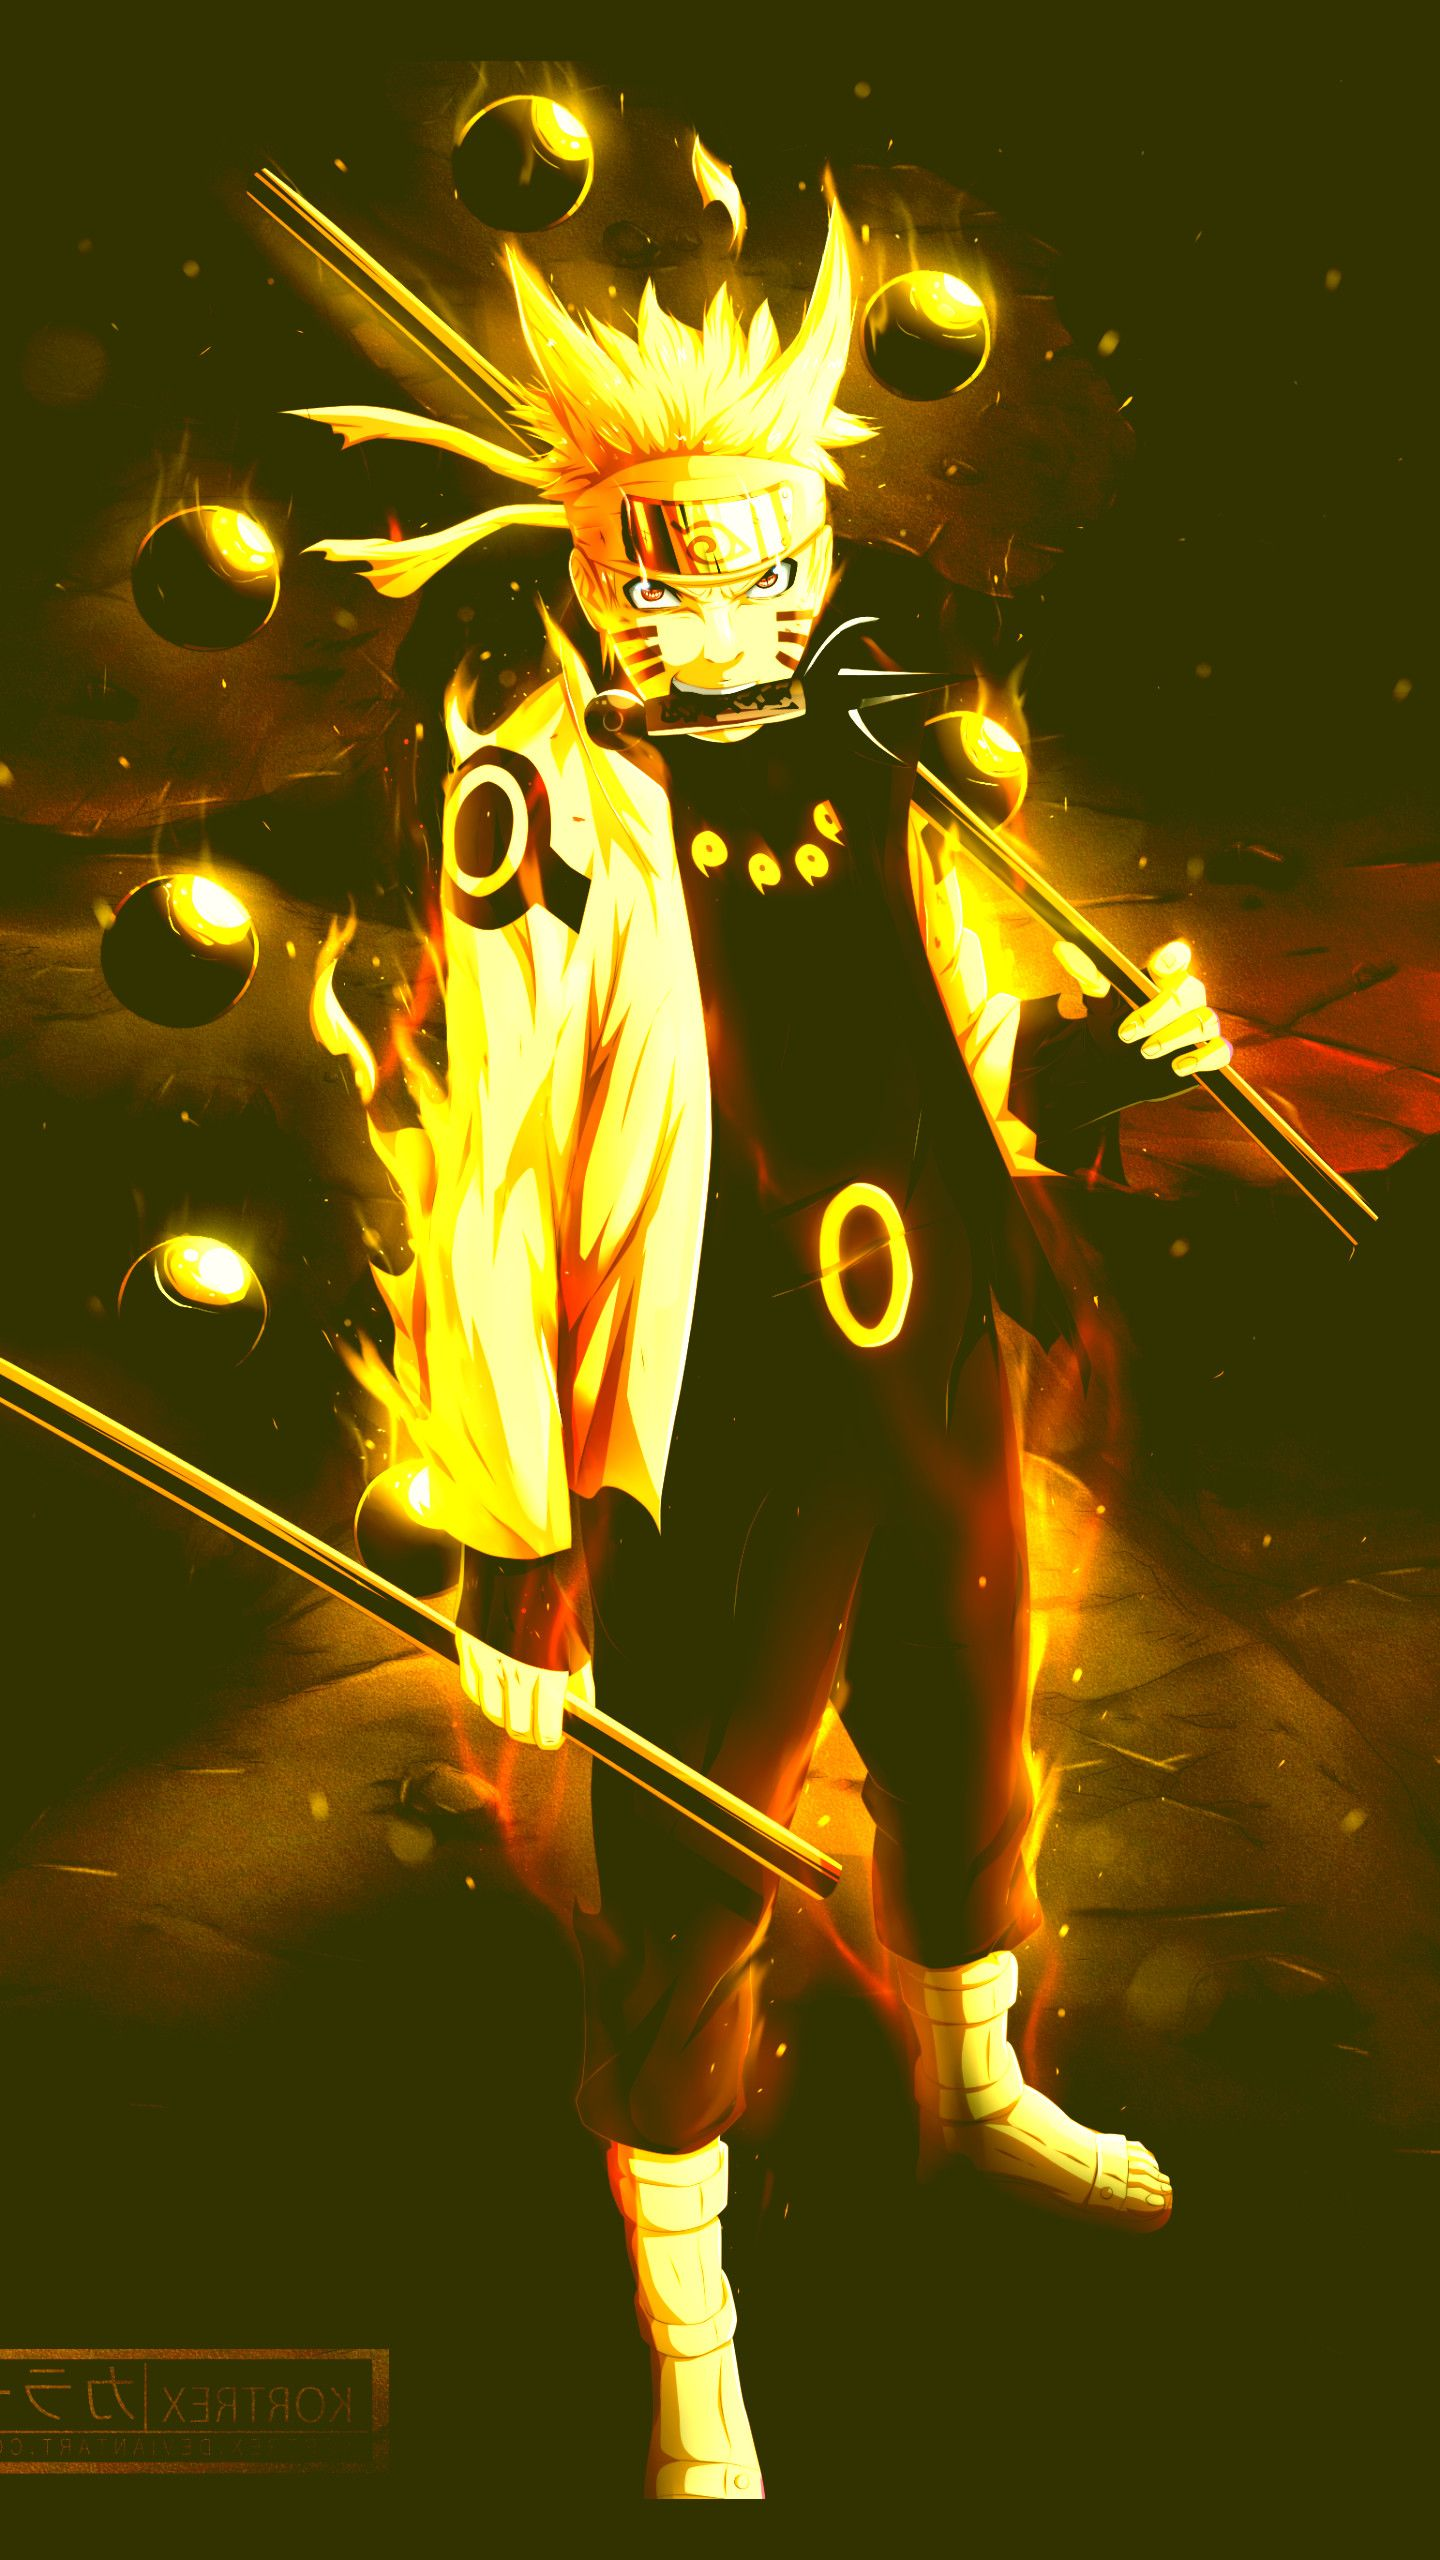 Naruto Anime iPhone Wallpapers   Top Naruto Anime iPhone 1440x2560